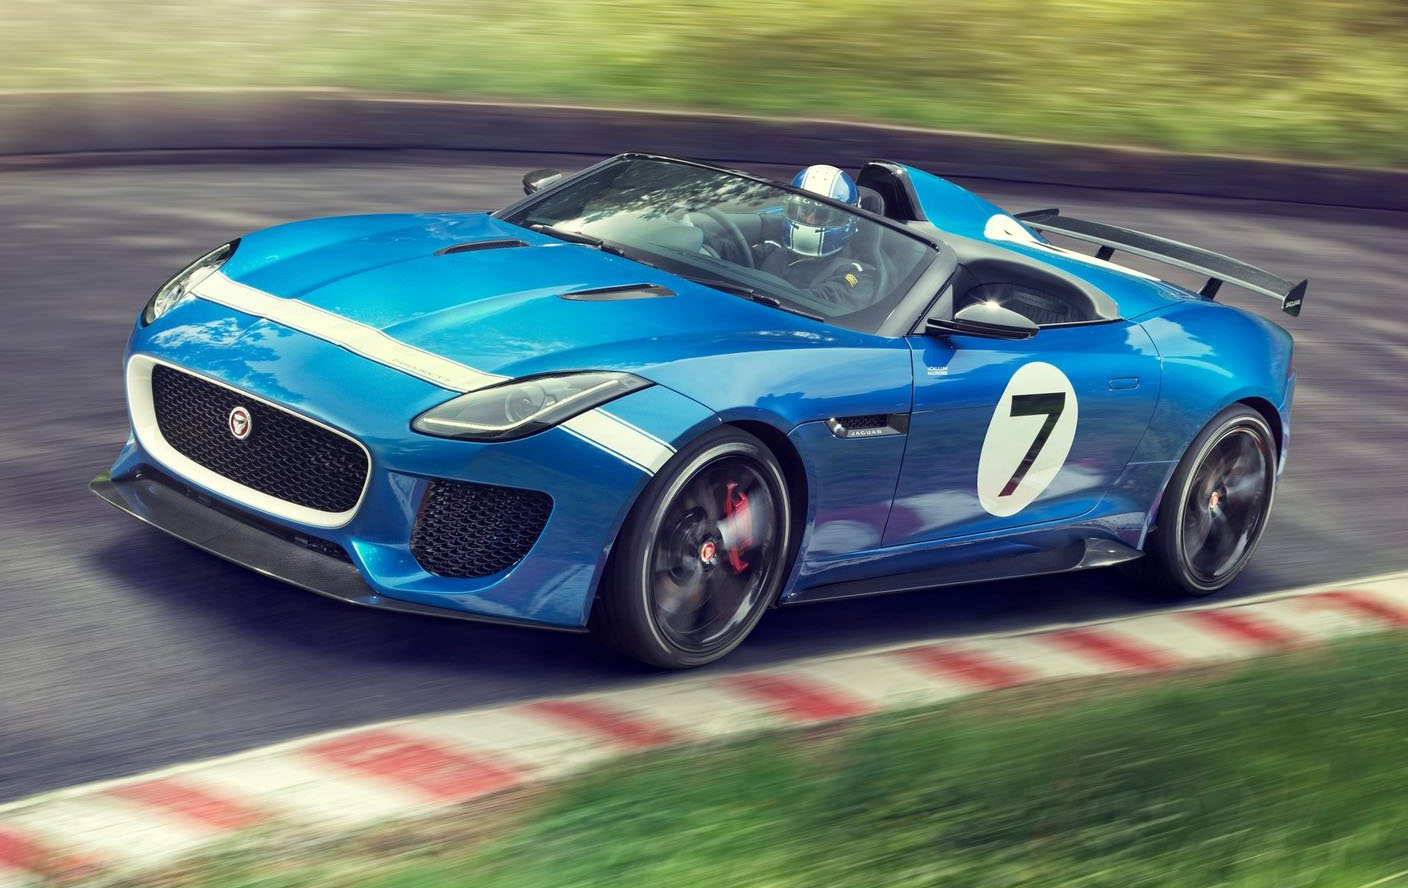 2019 Jaguar F Type Concept photo - 5